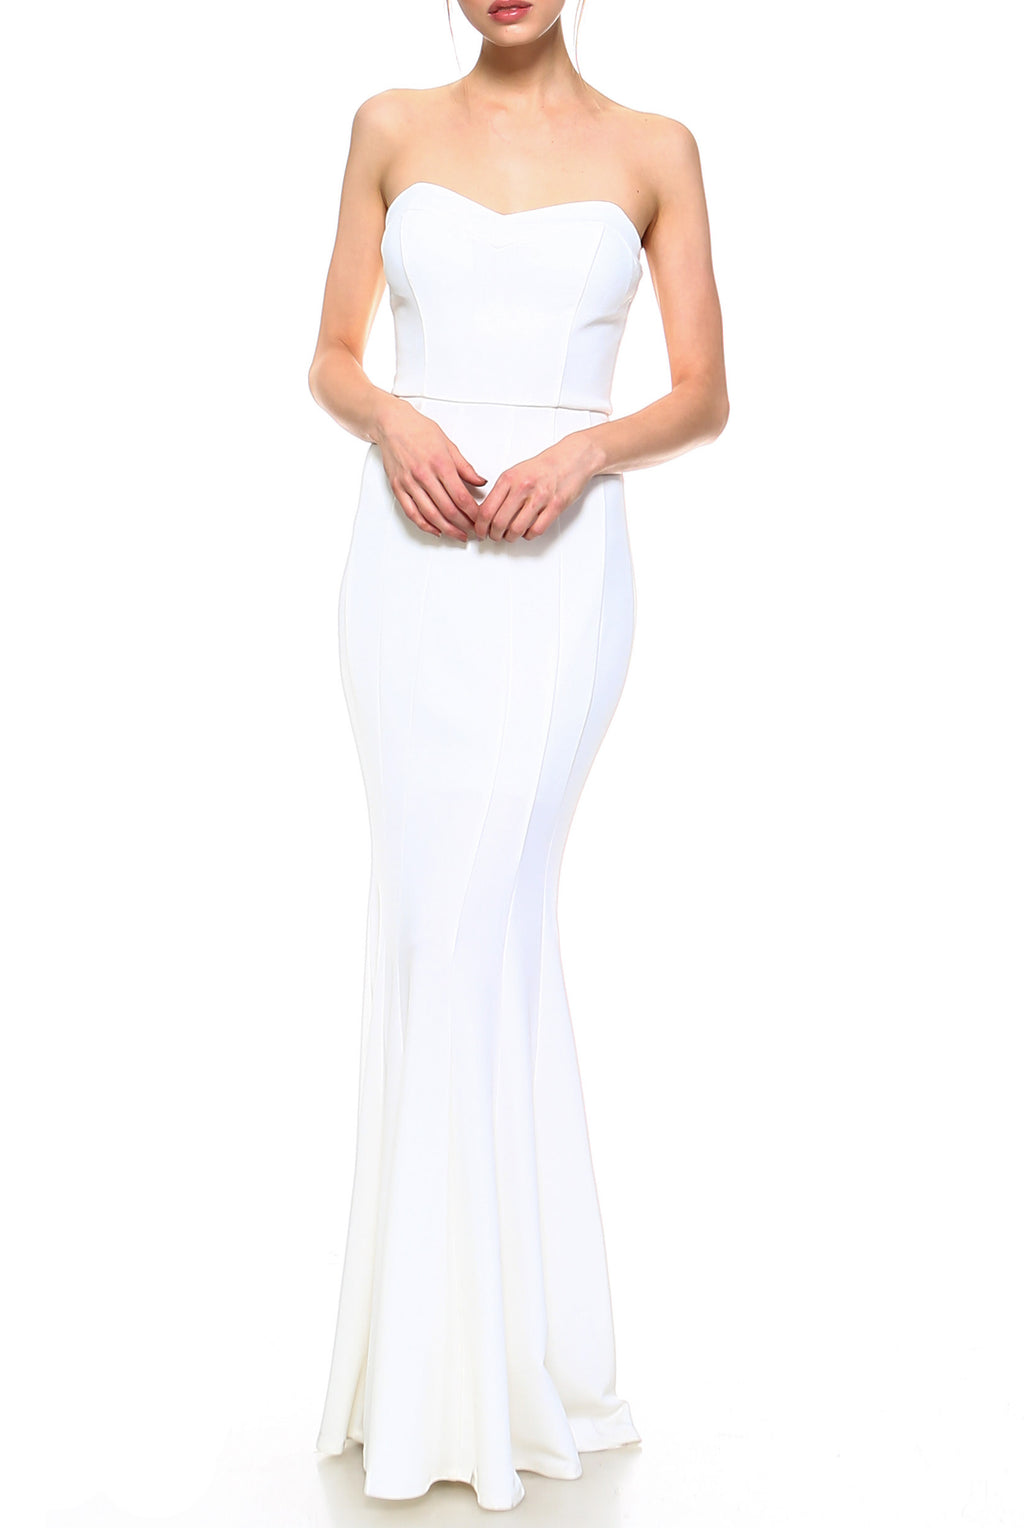 Teeze Me | Strapless Tube Top Trumpet Skirt Long Dress  | Ivory - Teeze Me